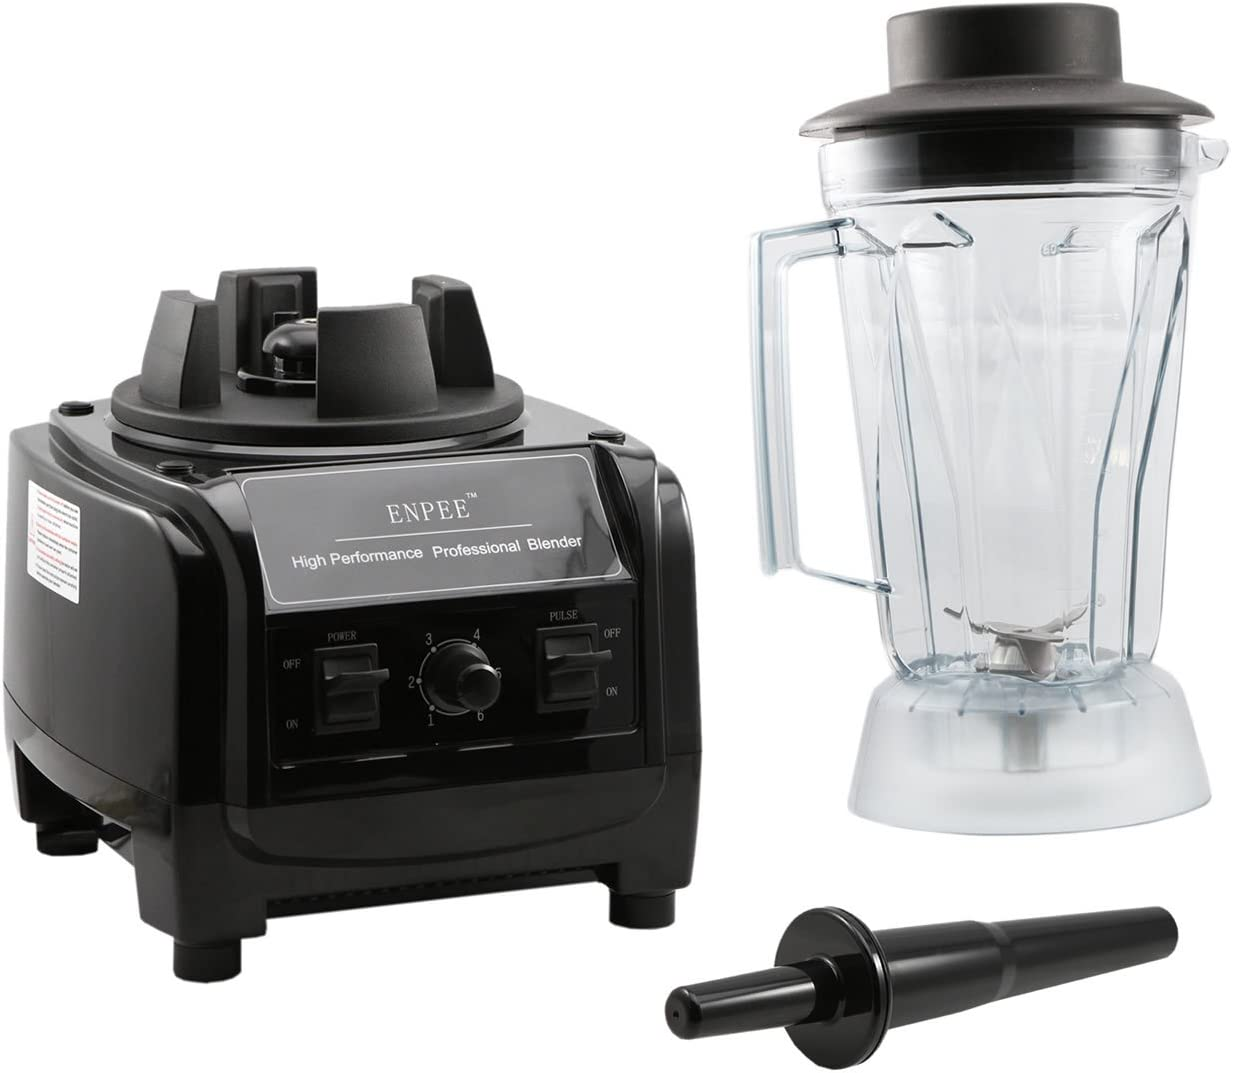 Enpee Quiet Commercial Blender inc Sound Reducing Cover Pre Programmed Modes UK